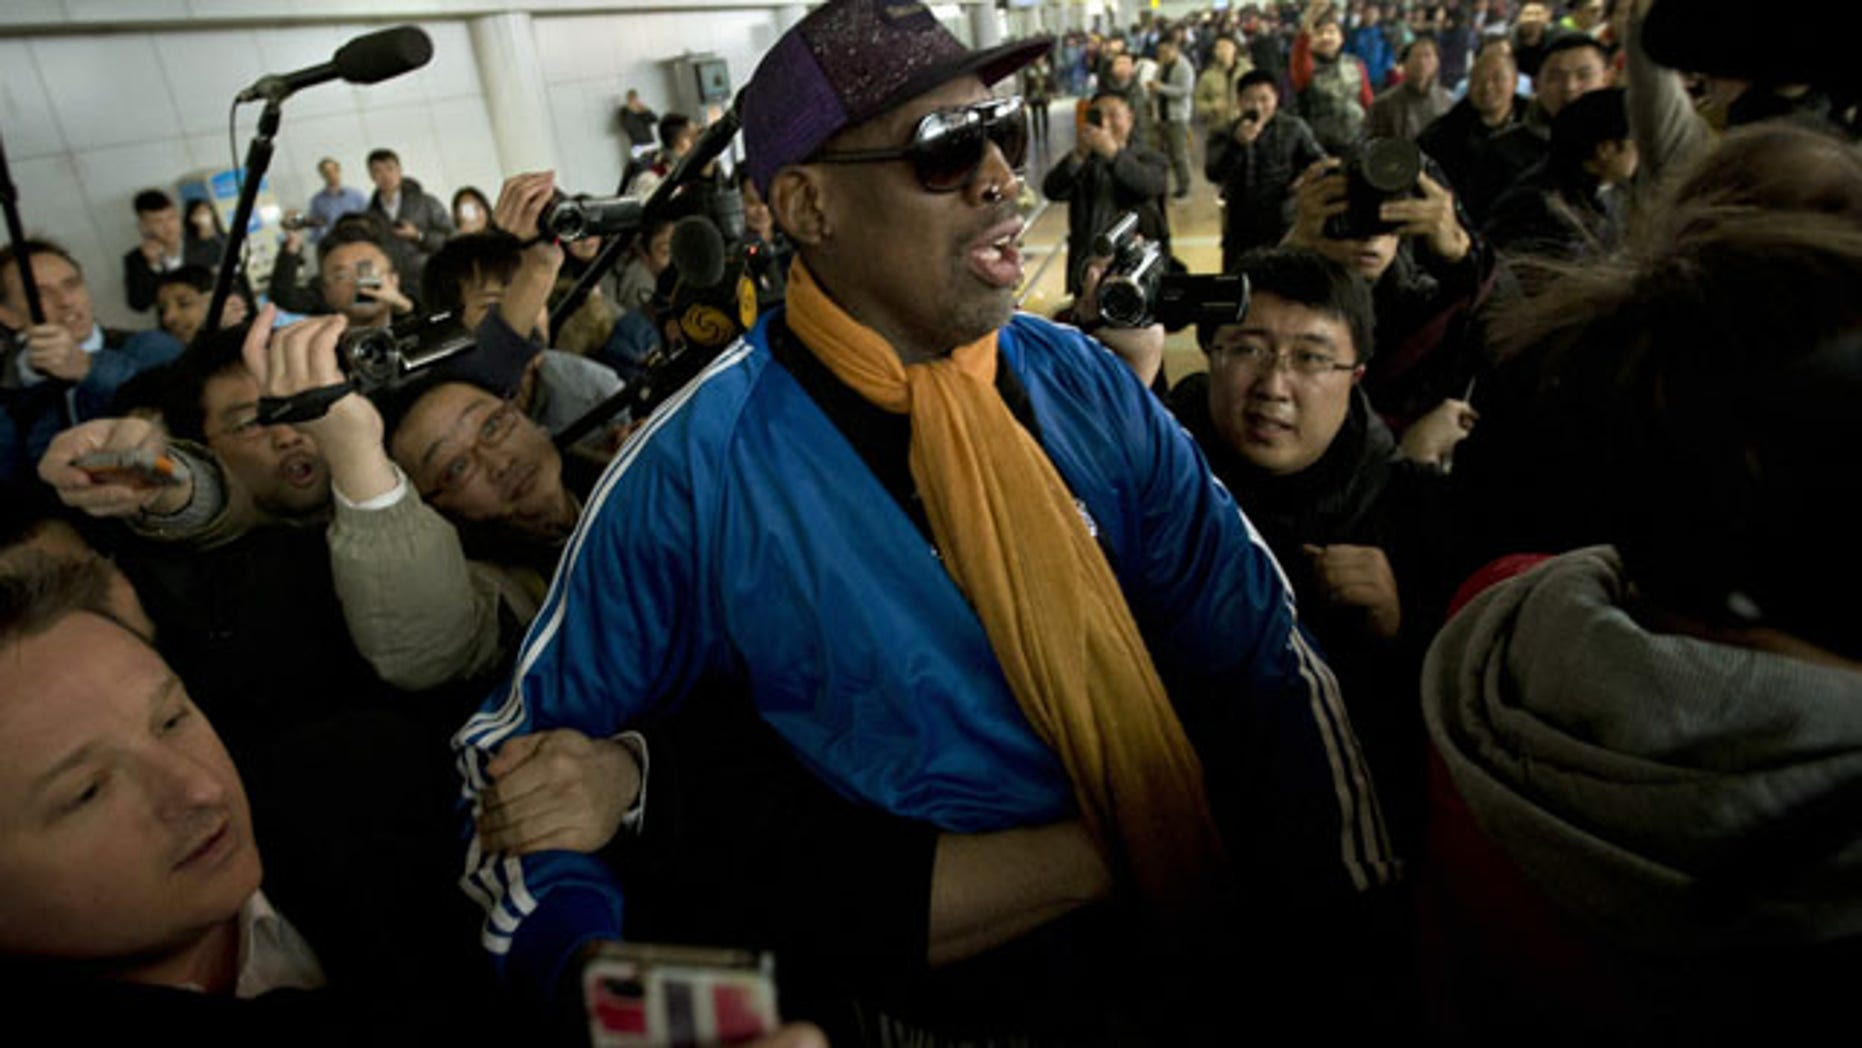 January 13, 2014: Former NBA basketball player Dennis Rodman is followed by journalists as he arrives at the Capital International Airport in Beijing from Pyongyang. A squad of former basketball stars led by Rodman had a friendly game with North Korean basketball players in Pyongyang. (AP Photo/Alexander F. Yuan)